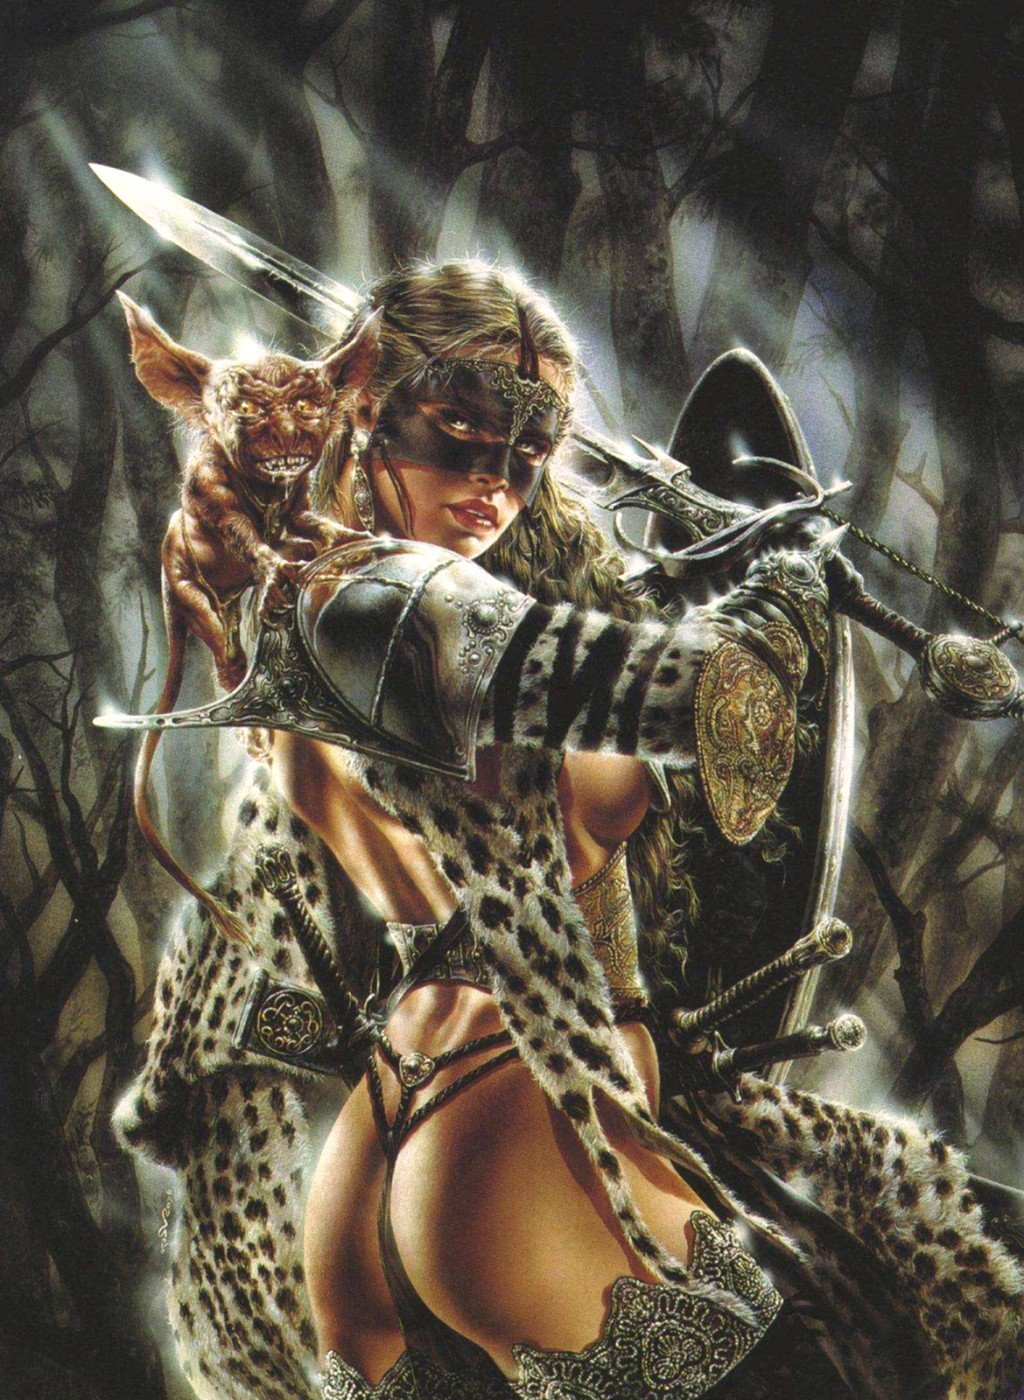 Not absolutely luis royo heavy metal